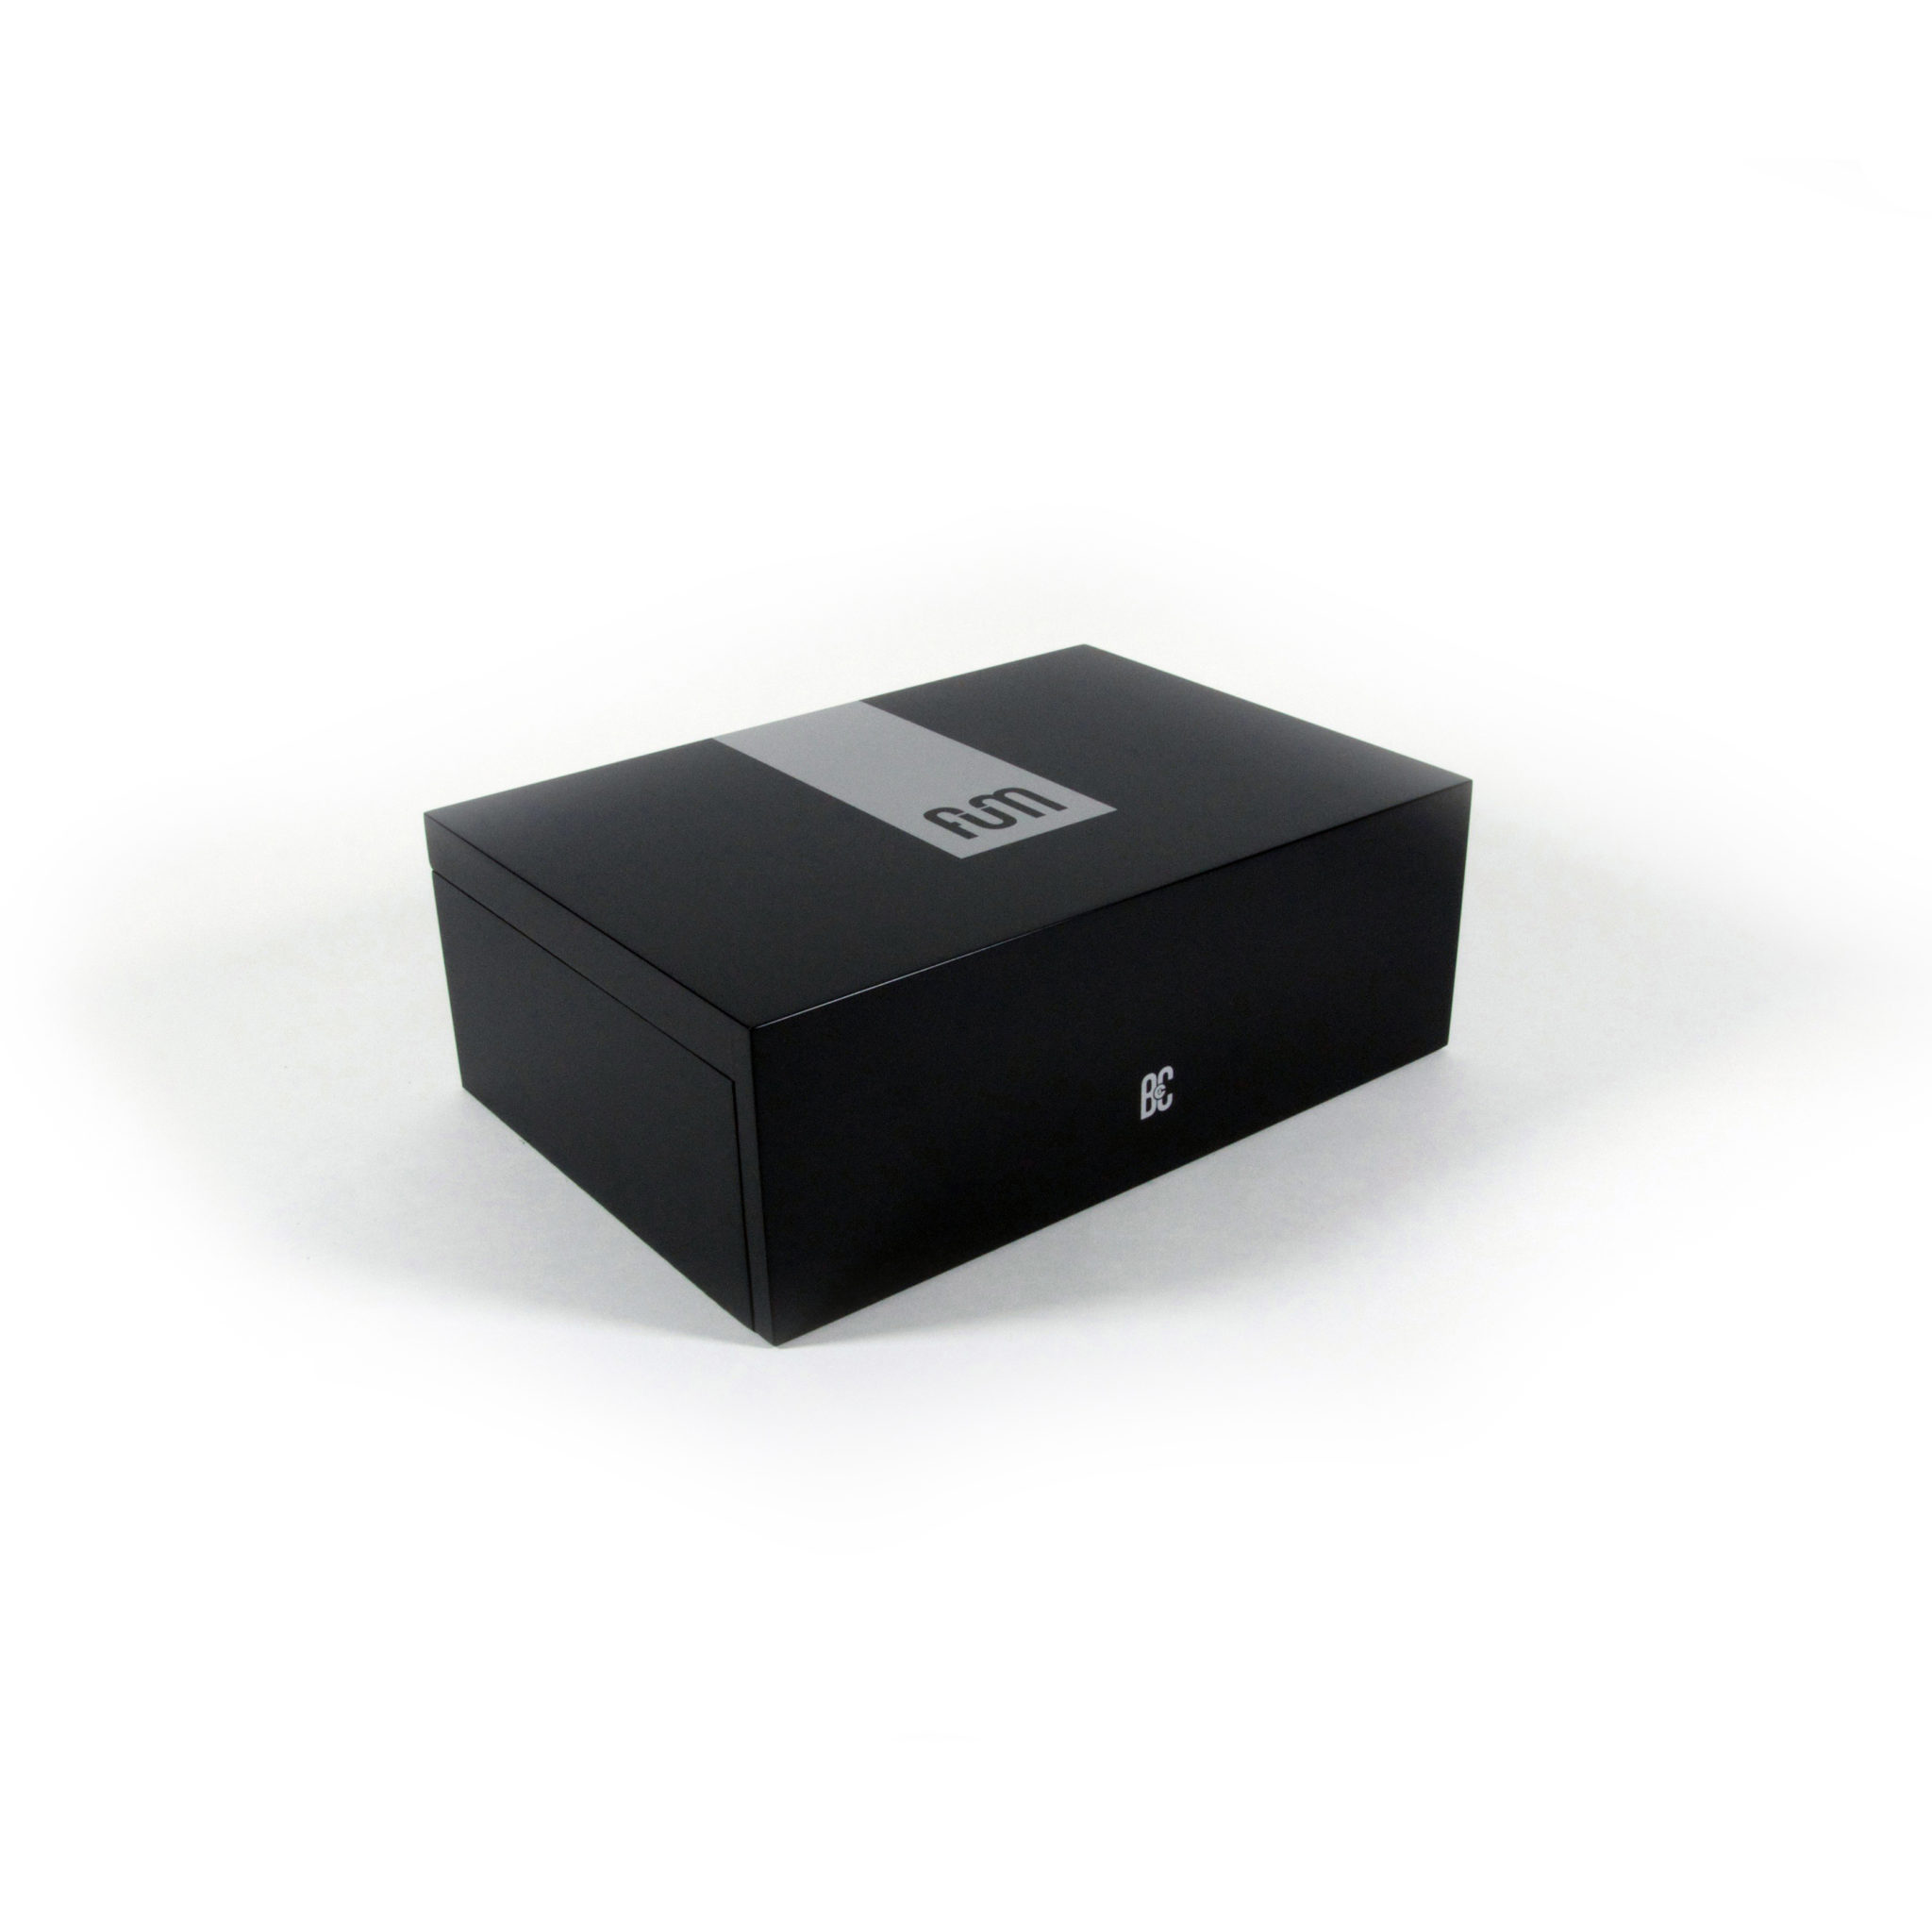 Black large B4CC is a solid wood desktop humidor specially designed for keeping the cannabis in optimum conditions due to its hermetic seal and interior humidity circulation system.